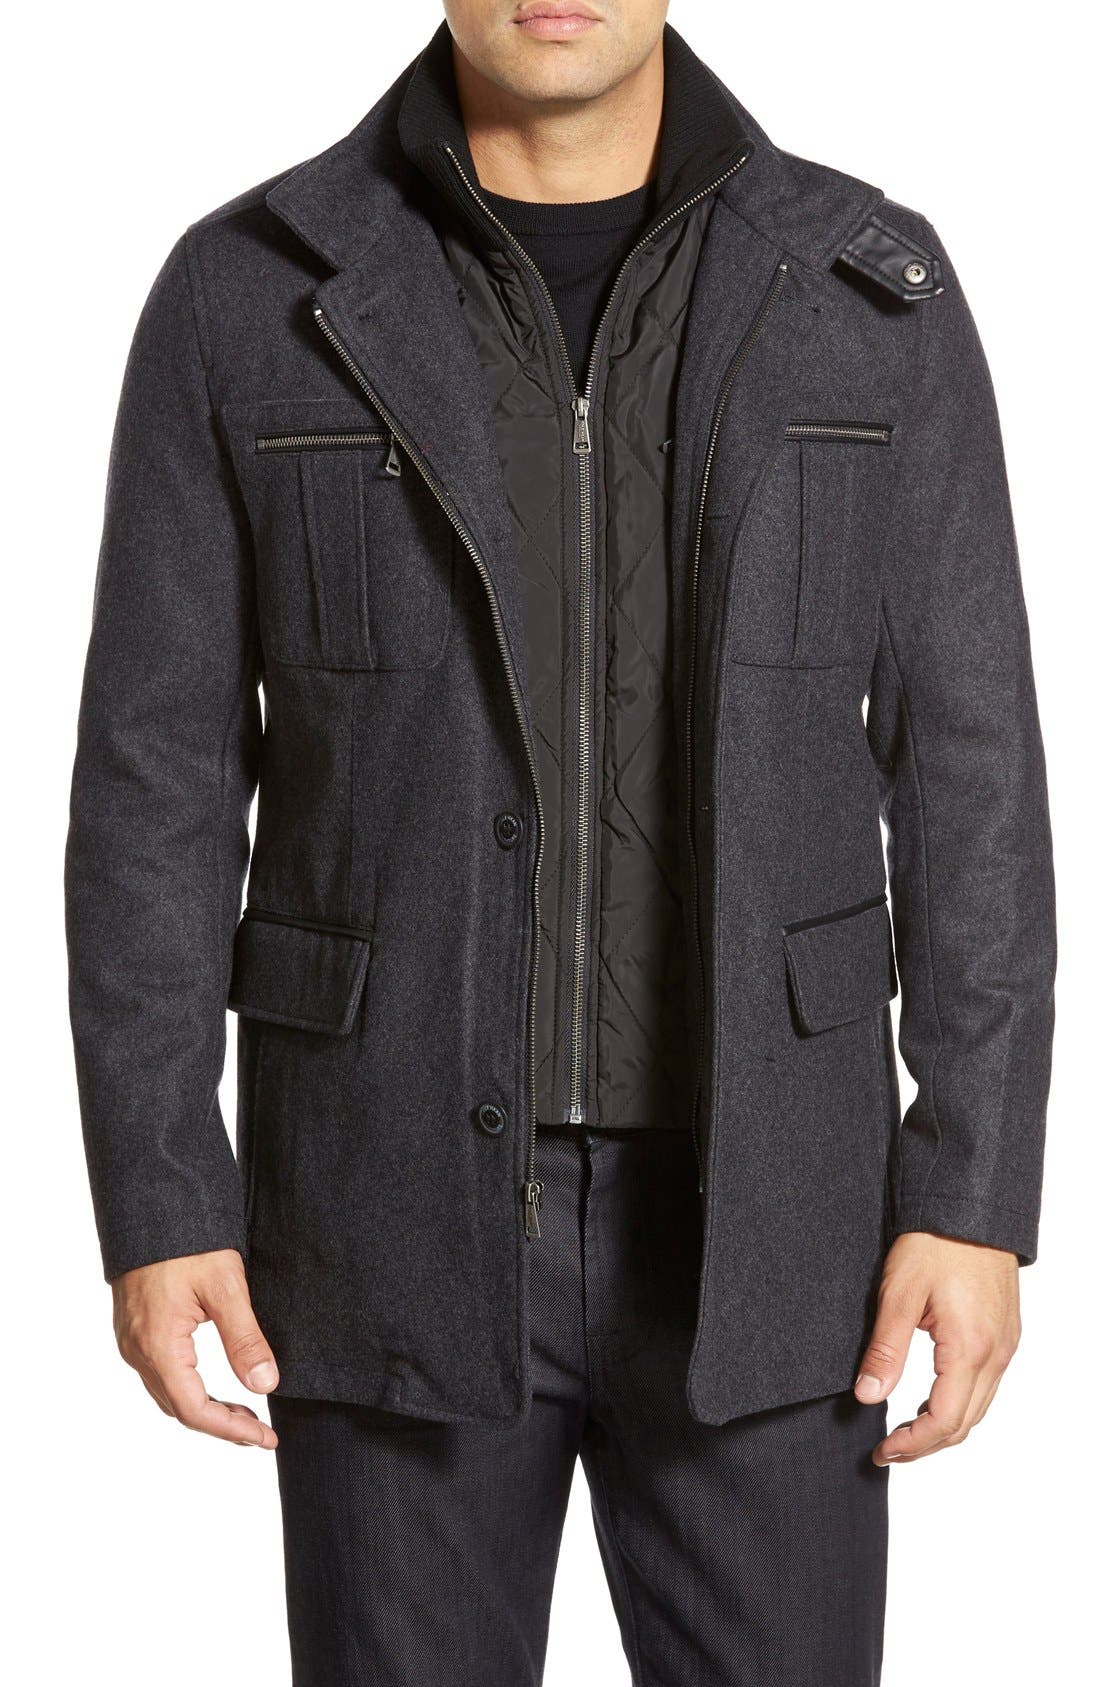 Main Image - Cole Haan Wool Blend Jacket